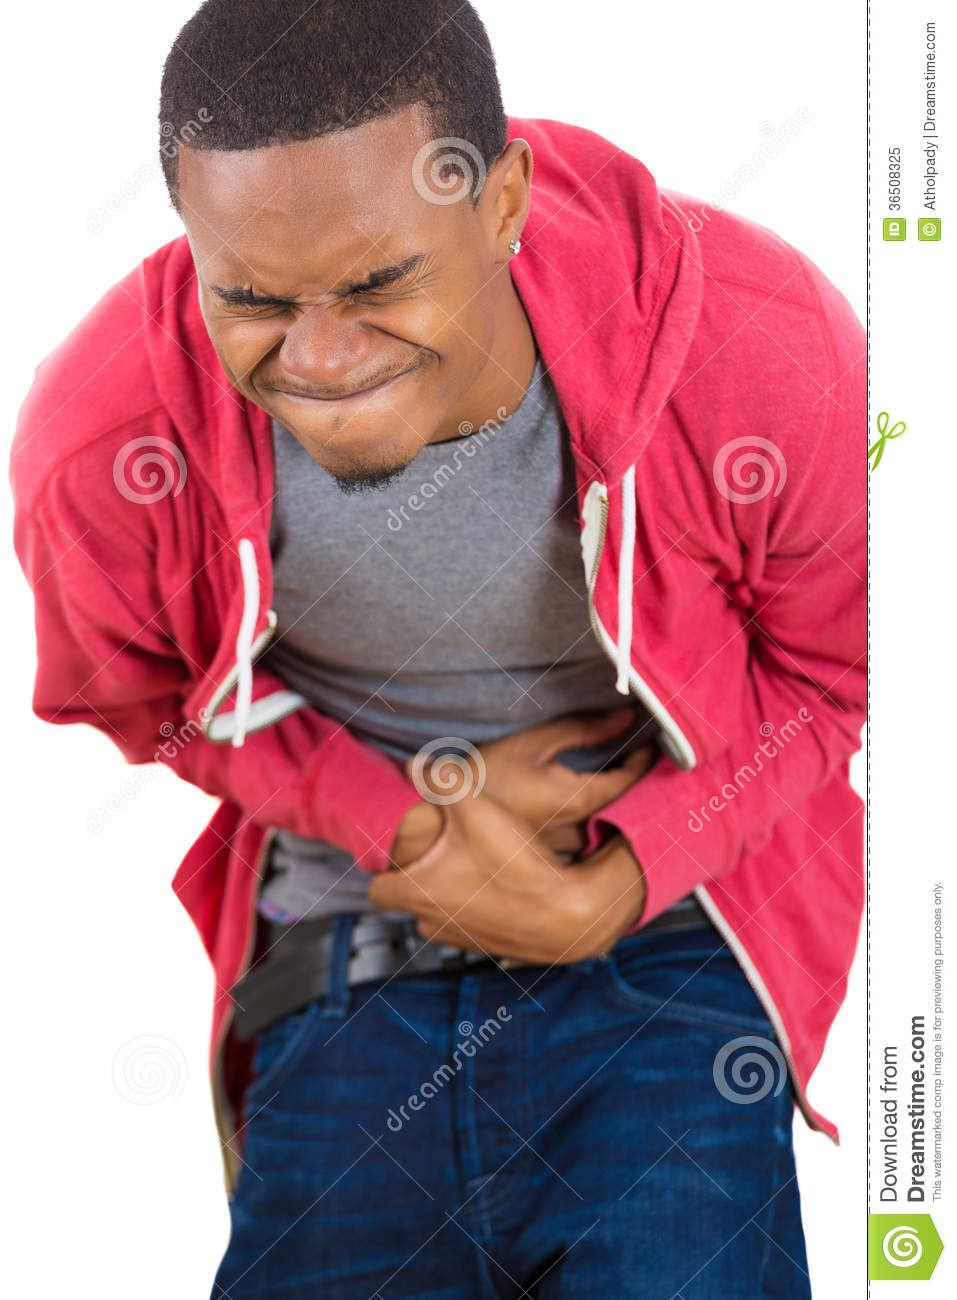 Guy With Bad Stomach Pain Royalty Free Stock Photo